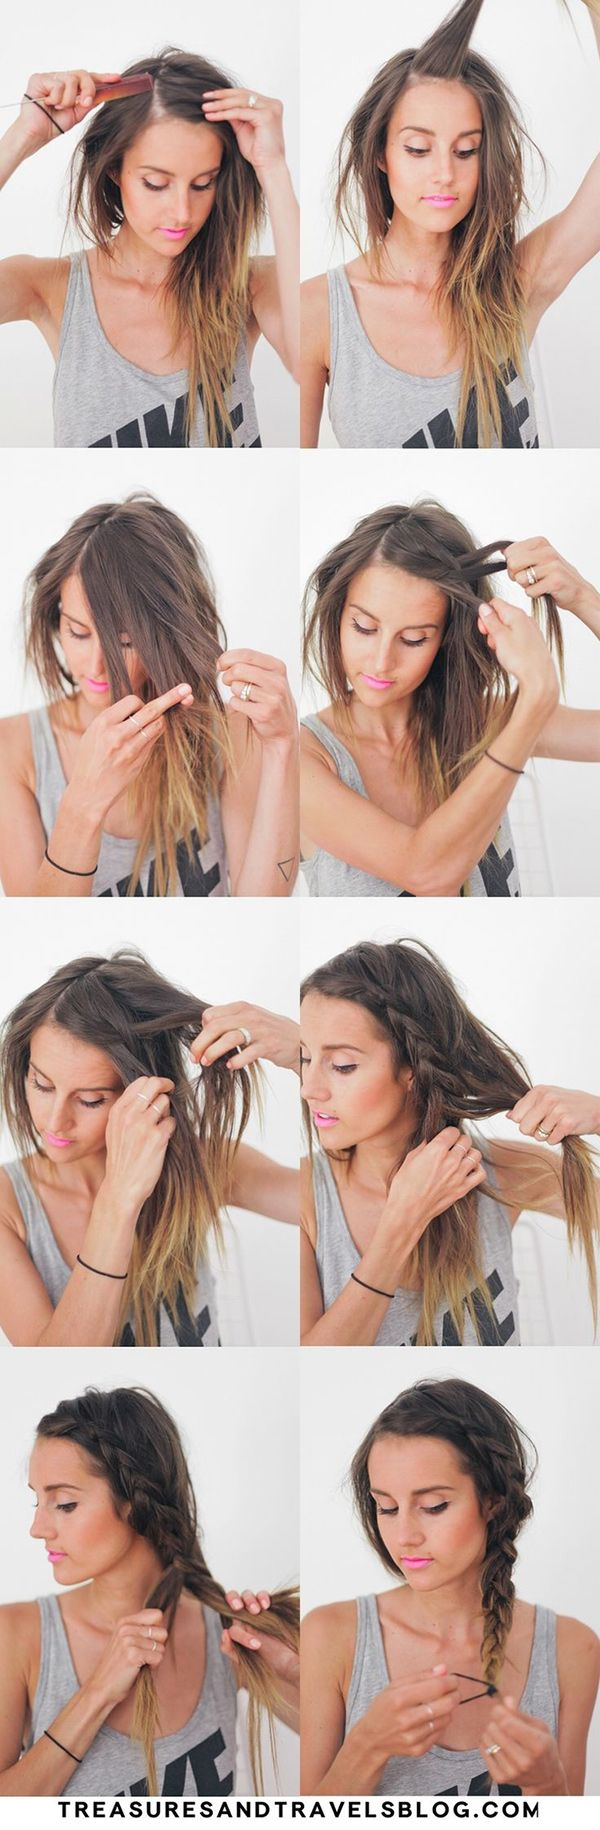 10 Hairstyles That Are Way Better With Dirty Hair